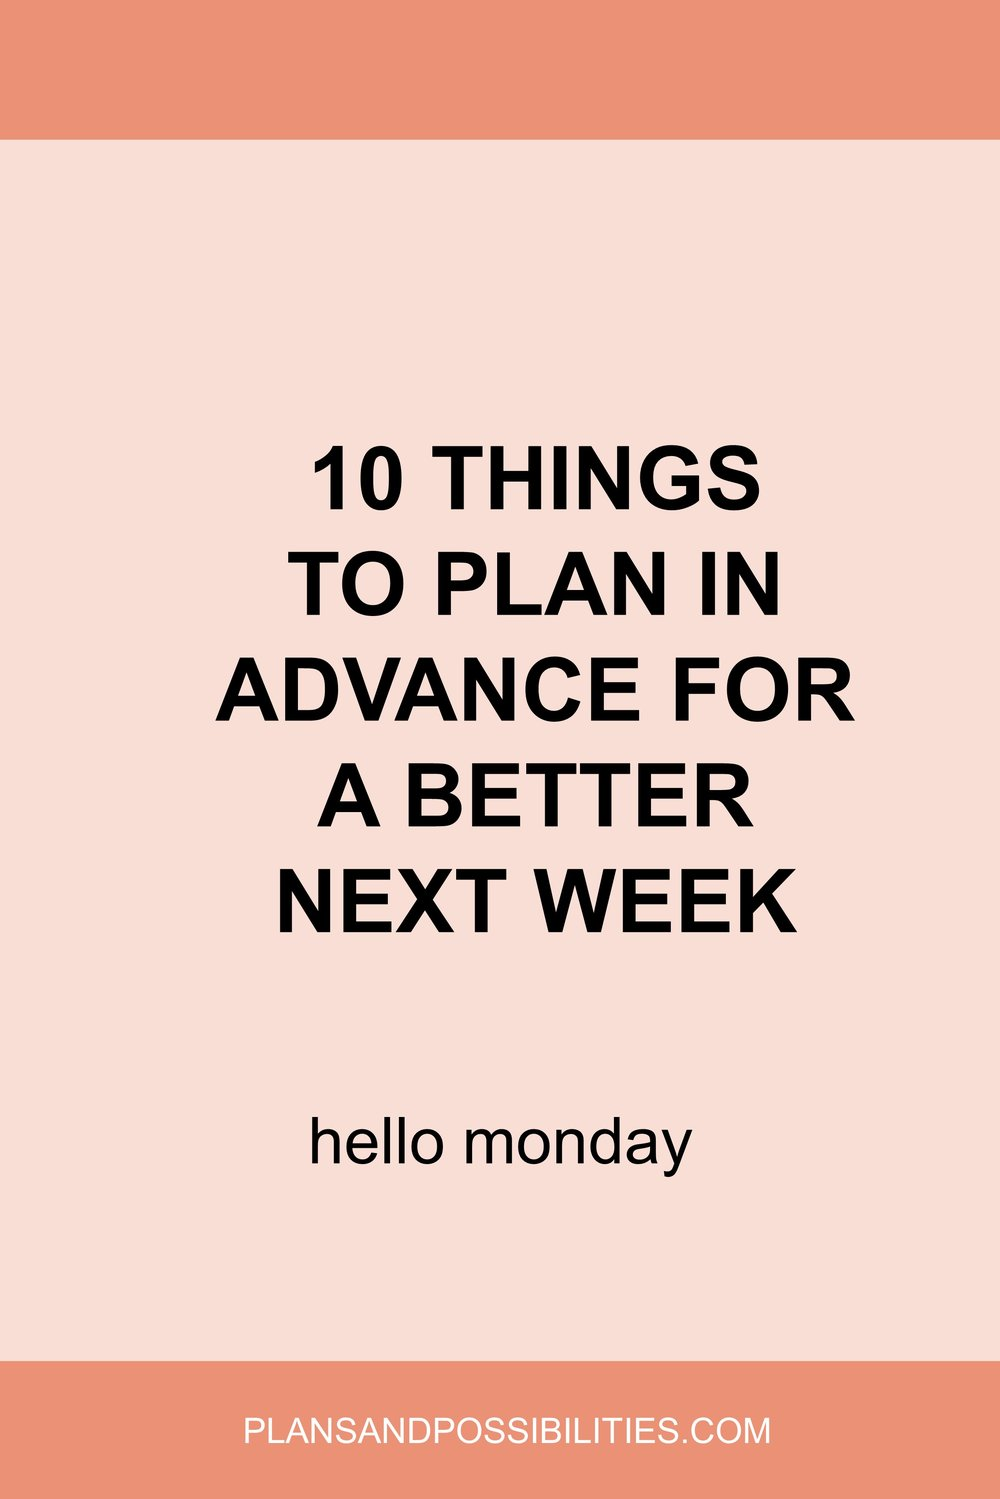 10 Things To Plan For A Better Next Week.jpg